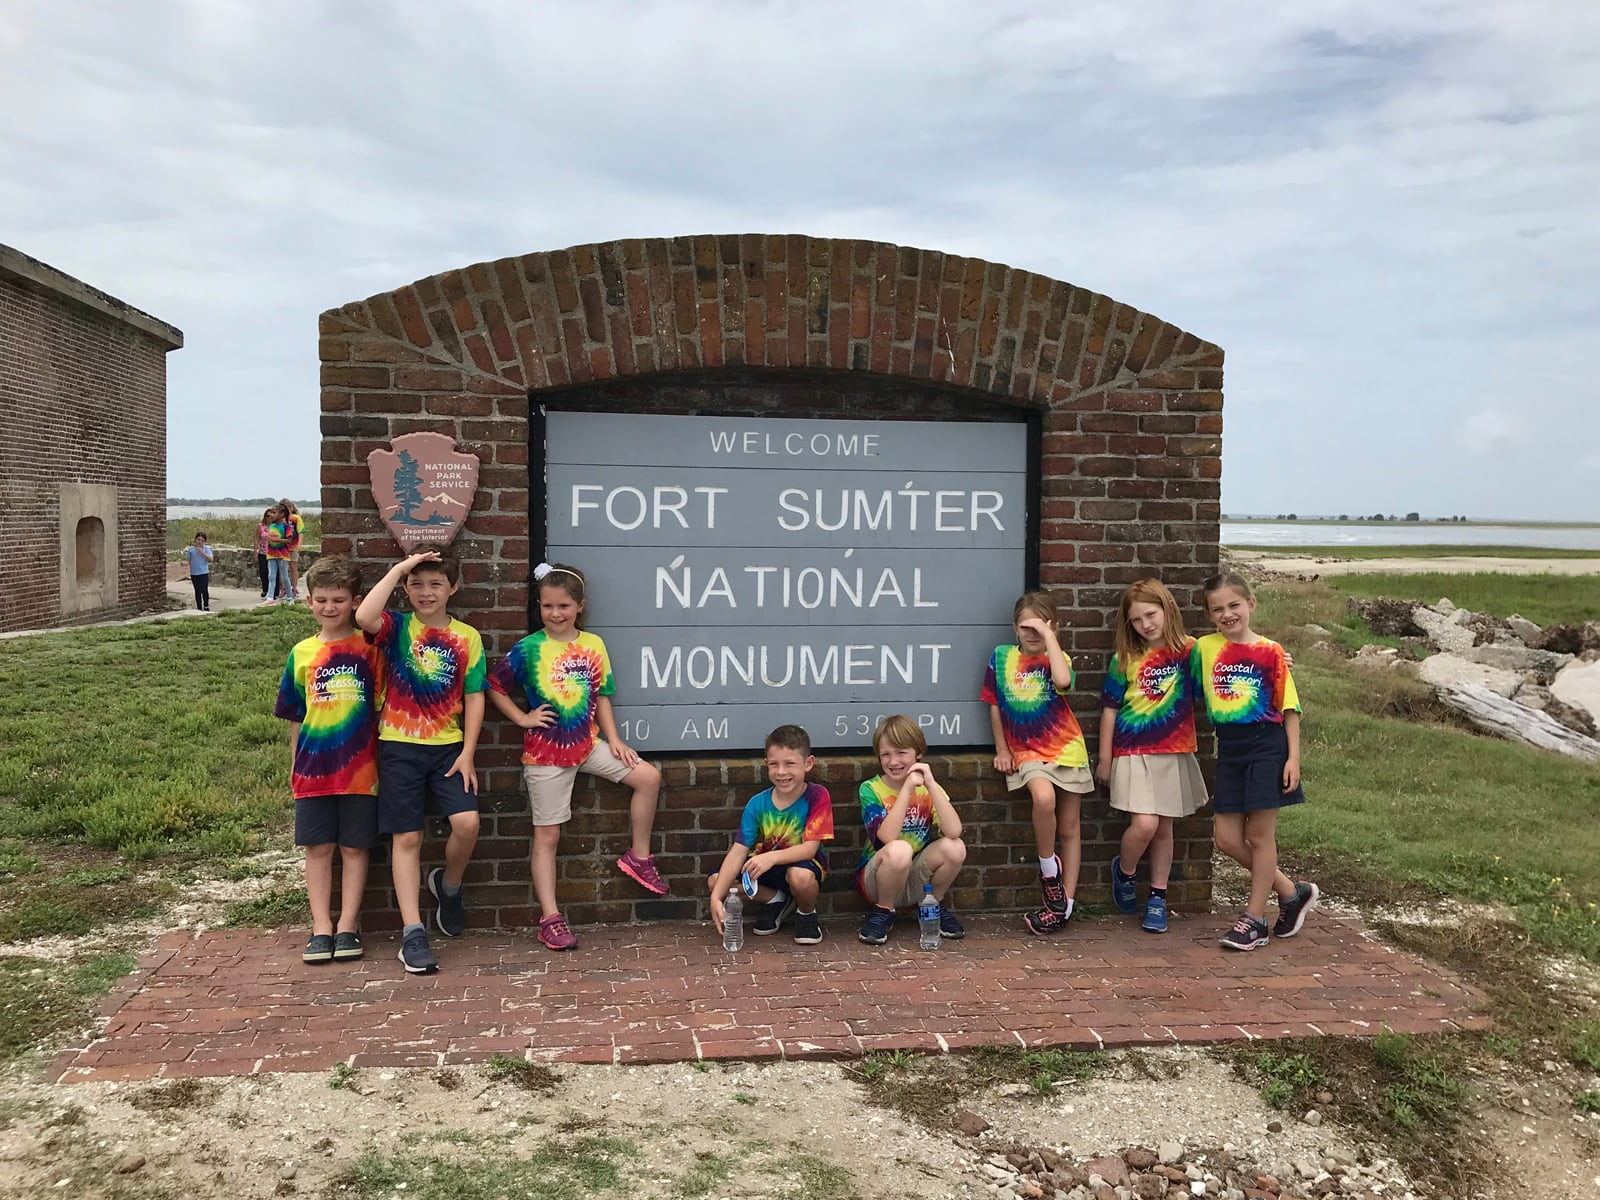 Lower Elementary students at Fort Sumter National Monument